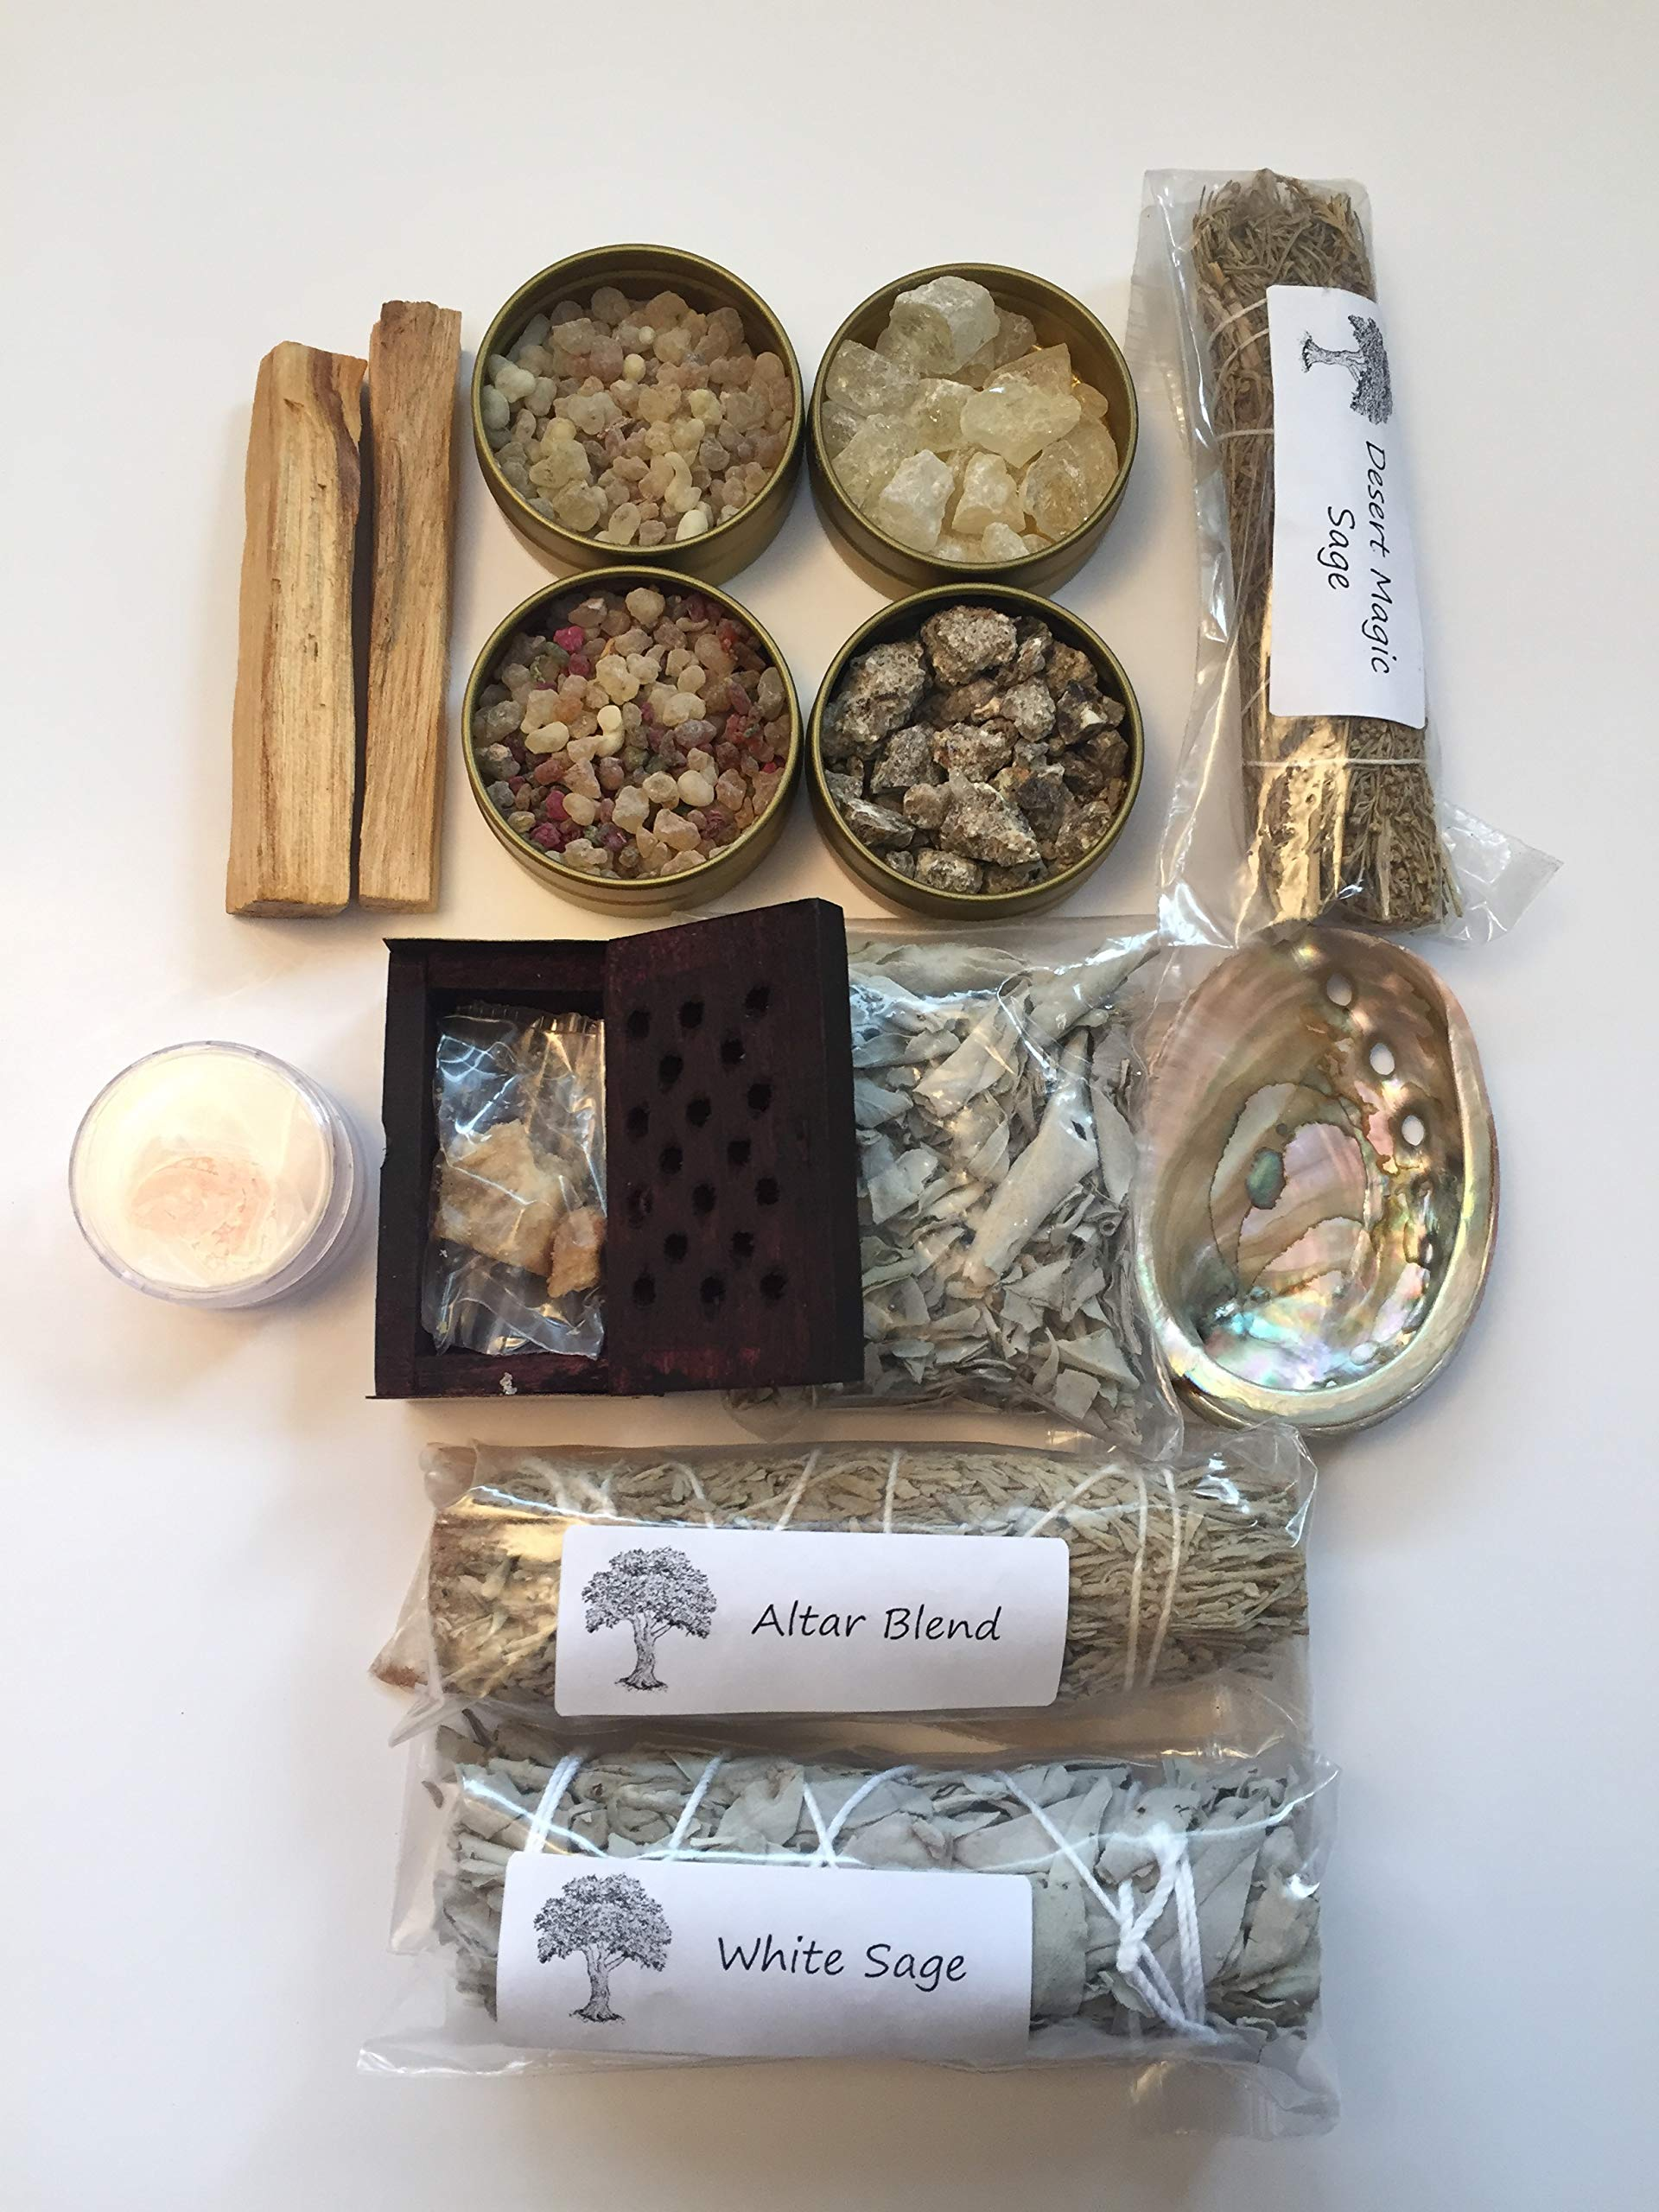 Resin Incense and Sage Smudges Variety Gift Kit includes, Amber Resin, Rose Resin, White Copal, Mystical Benzoin, Frankincense, White Sage Smudge, Desert Sage, Palo Santo Sticks and Abalone Shell by Sacred Scents For You (Image #4)